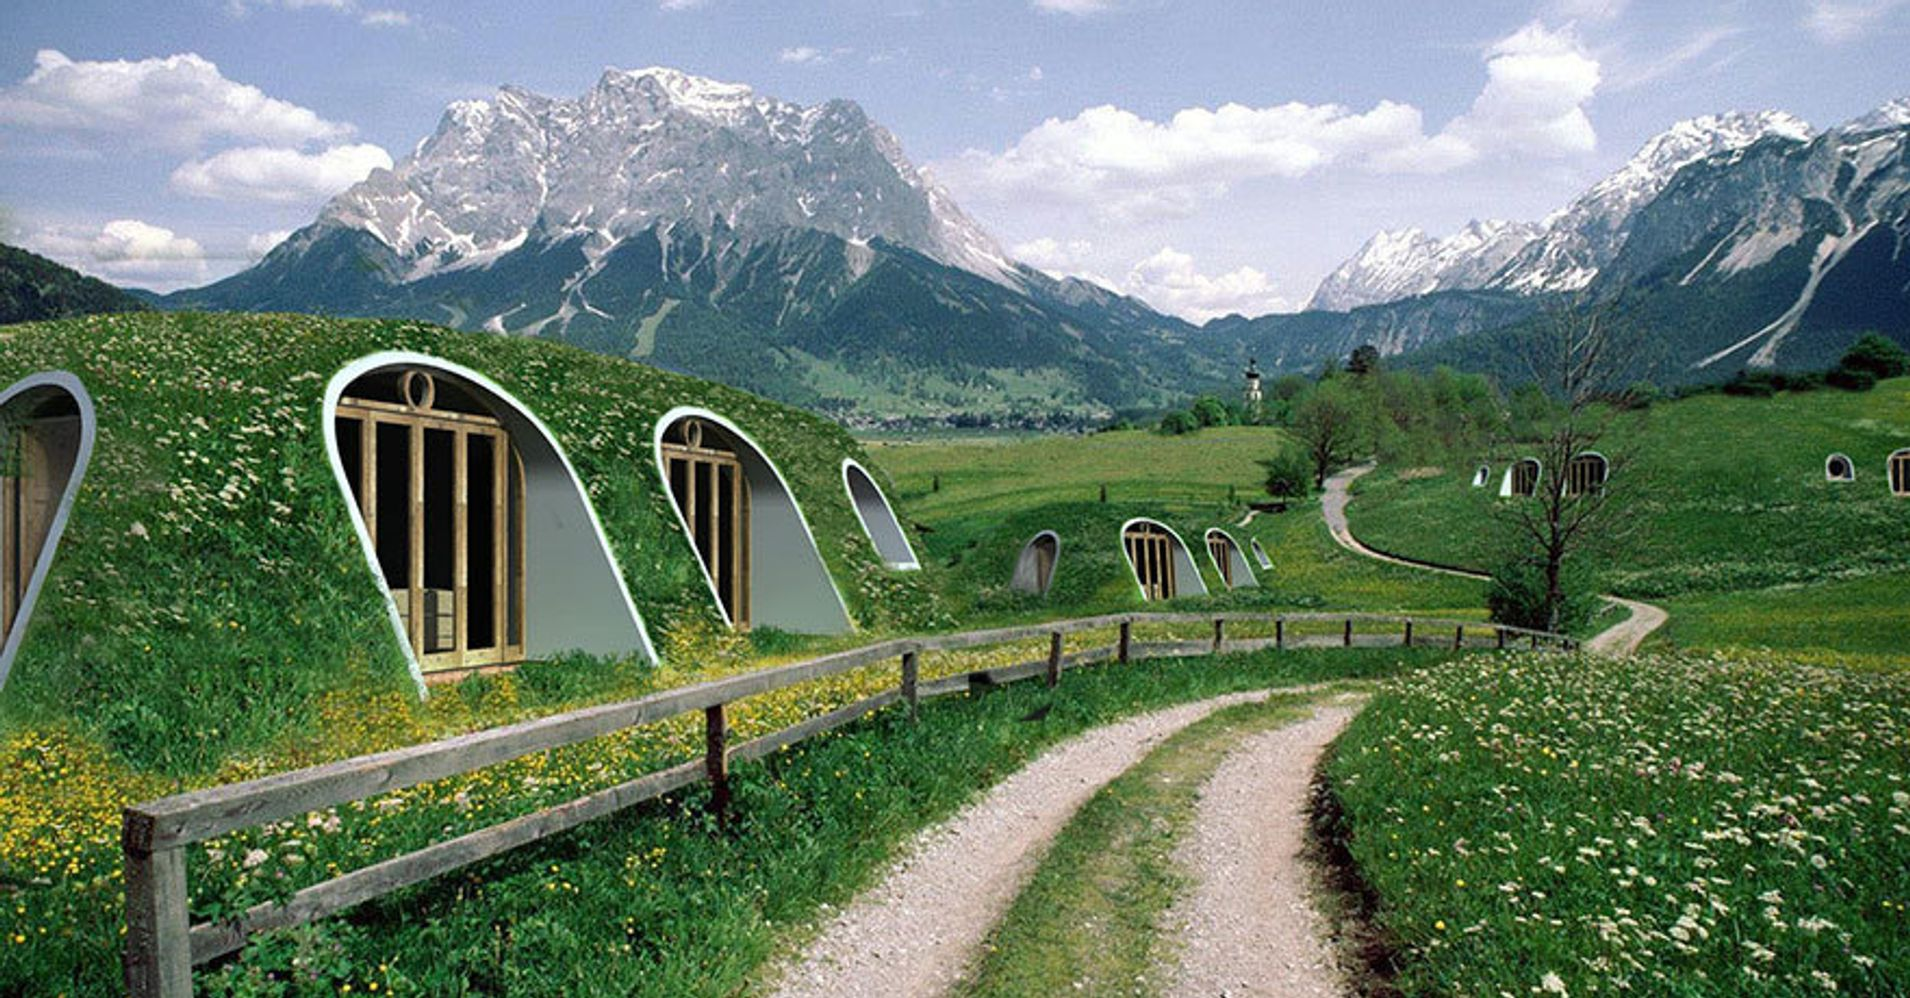 Lord Of The Rings Fans, Rejoice! You Can Now Live In A Hobbit-Hole ...